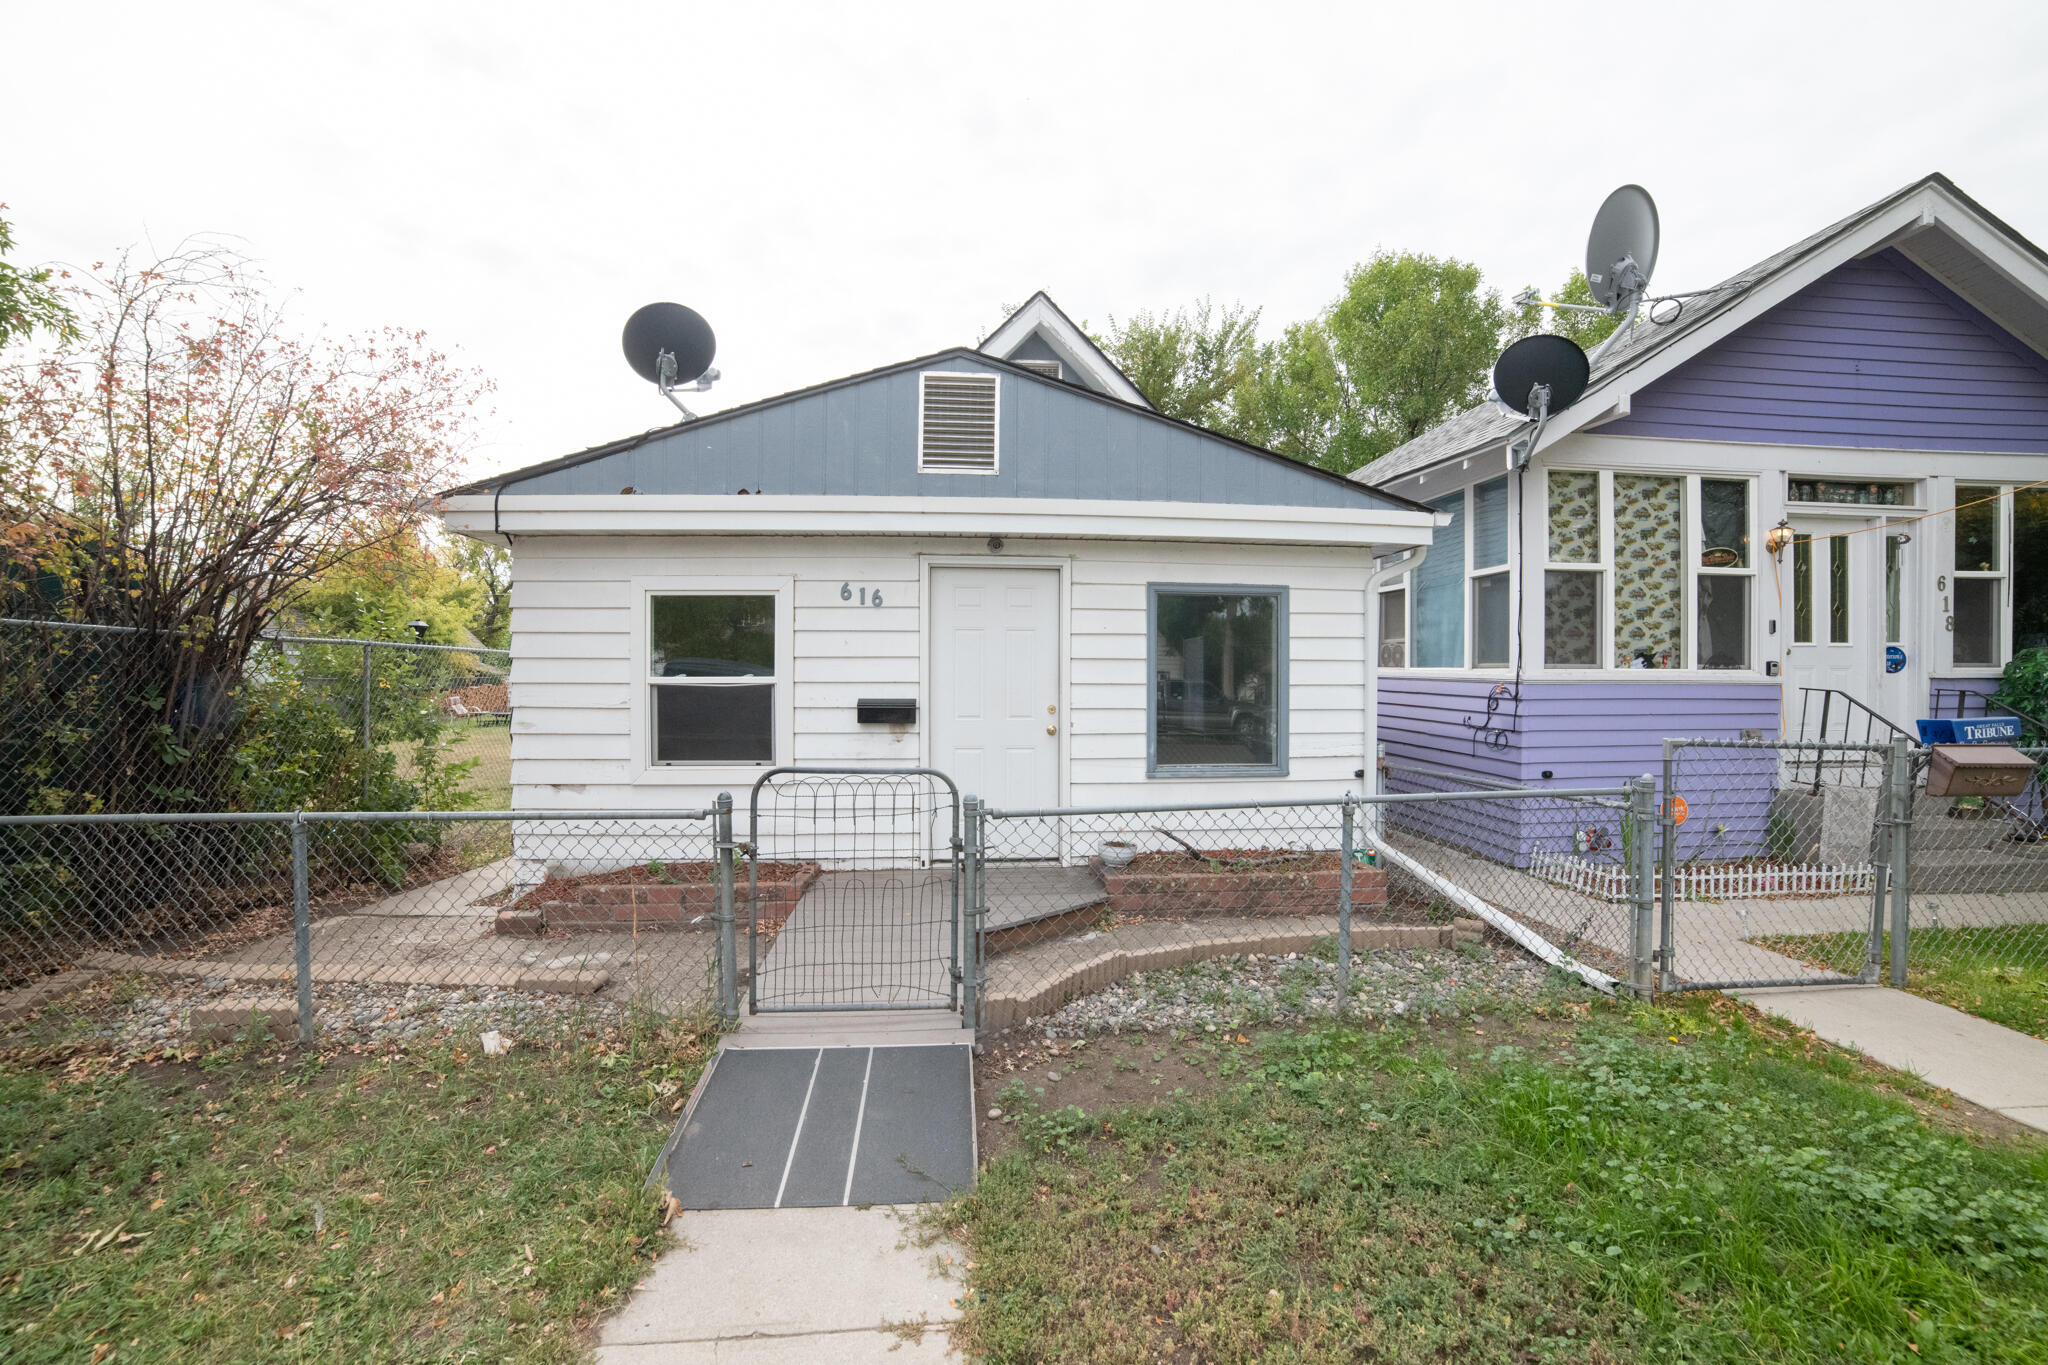 CUTE  MOVE IN READY 2 BEDROOM 1 BATHROOM 1 LEVEL HOME WITH OFF STREET PARKING. CALL YOUR REAL ESTATE PROFESSIONAL TODAY! SELLING AS IS